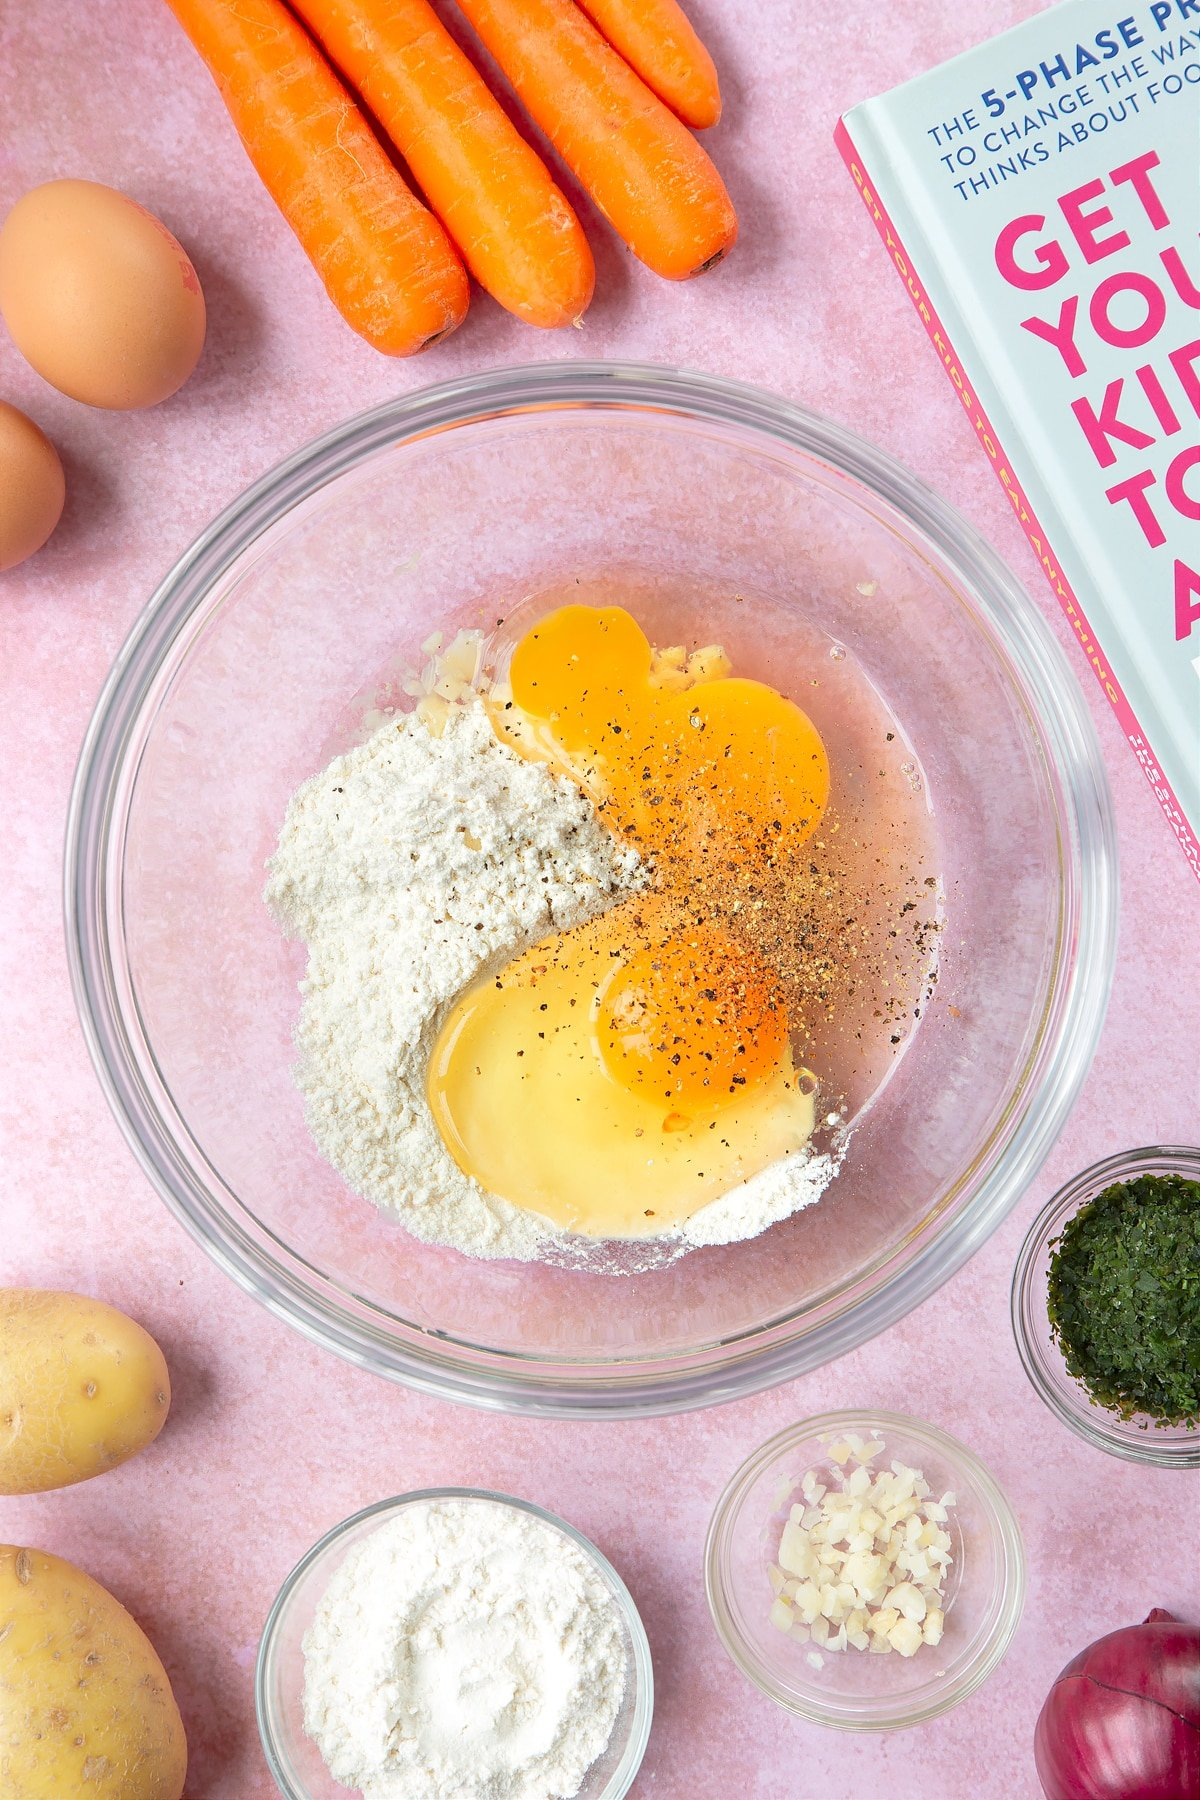 Flour, eggs, salt and pepper in a mixing bowl. The bowl is surrounded by ingredients to make carrot patties.